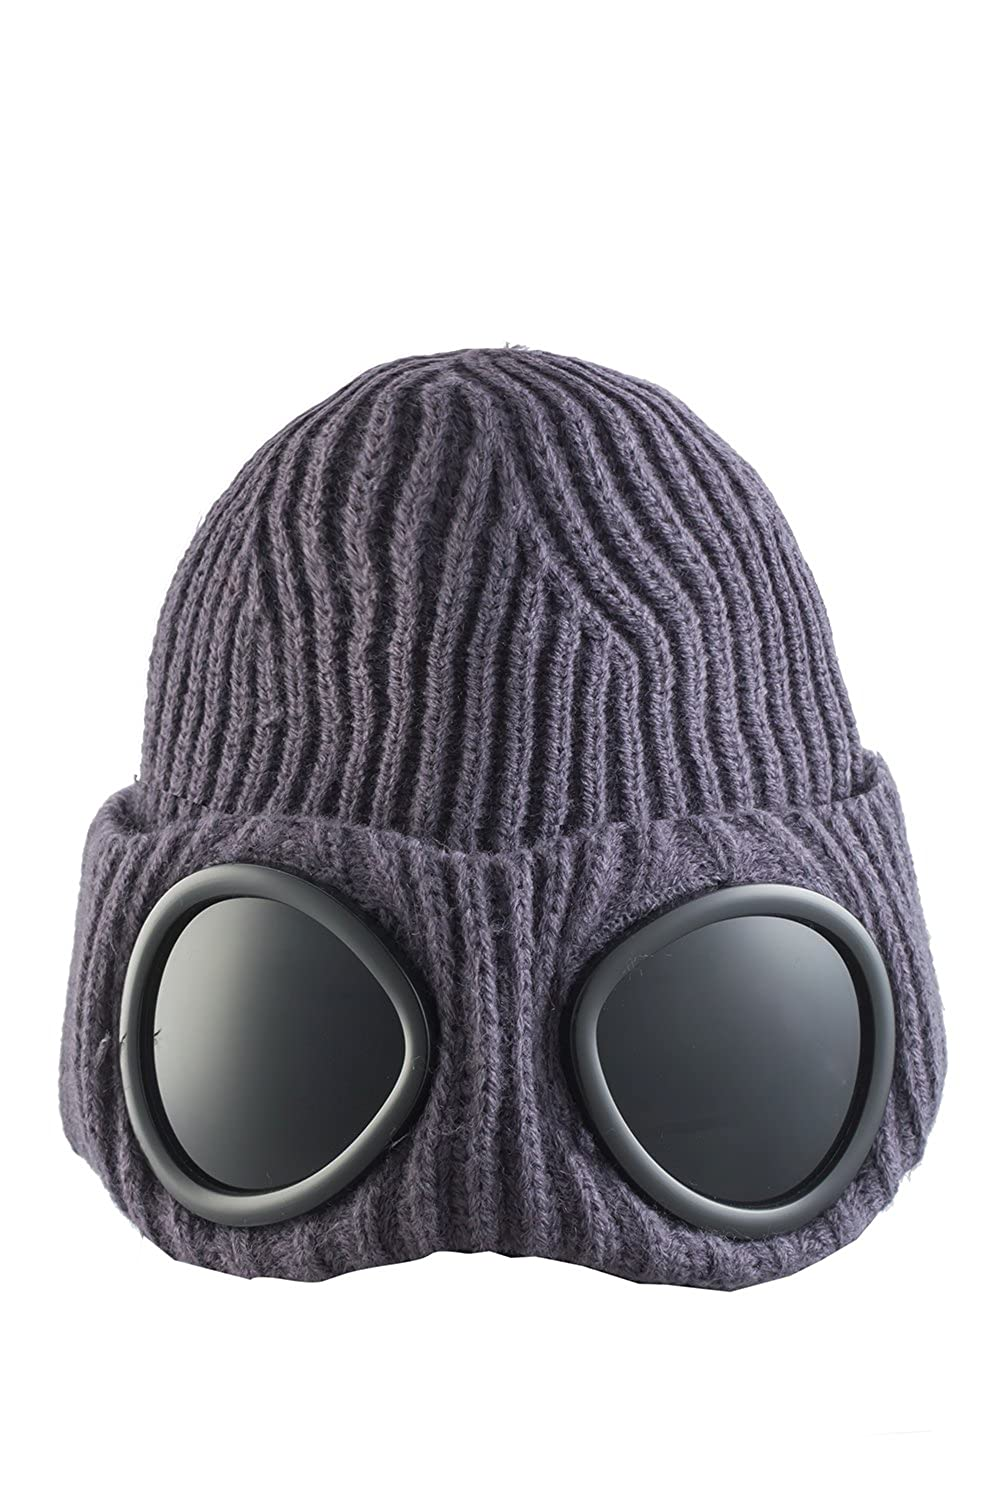 ec8836aadf74f ASVP Shop® Mens Goggle Beanie Knitted Woolly Winter Chunky Beanie Hat   Amazon.co.uk  Clothing